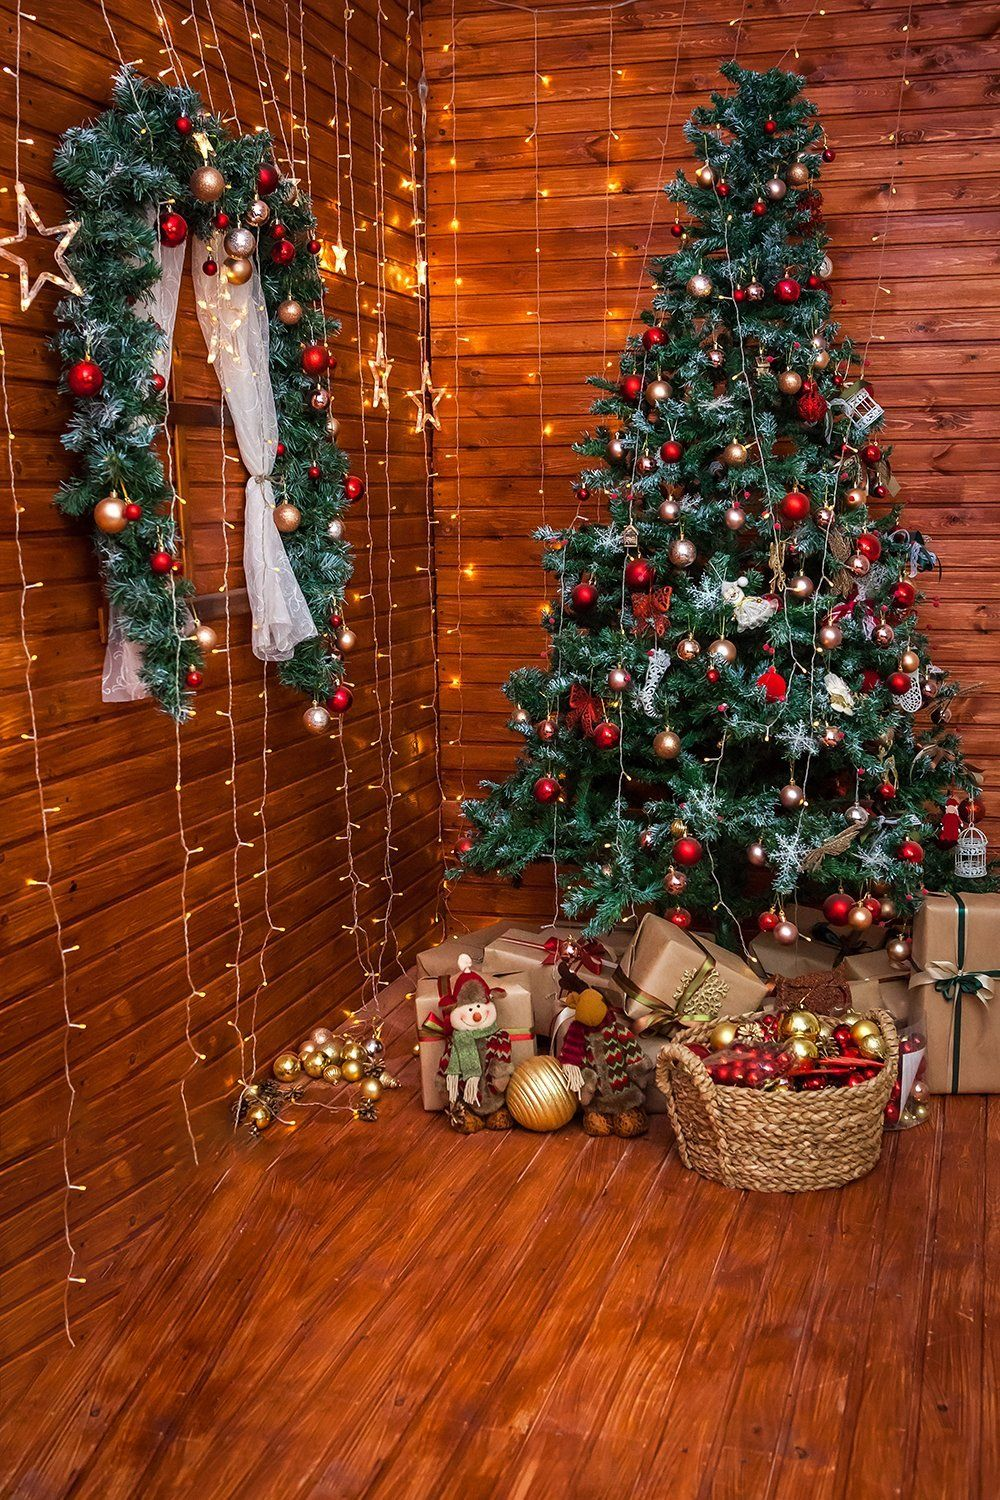 Dbd Christmas Event 2020 Christmas Tree Rom Decor Photography Backdrops DBD P19197 in 2020